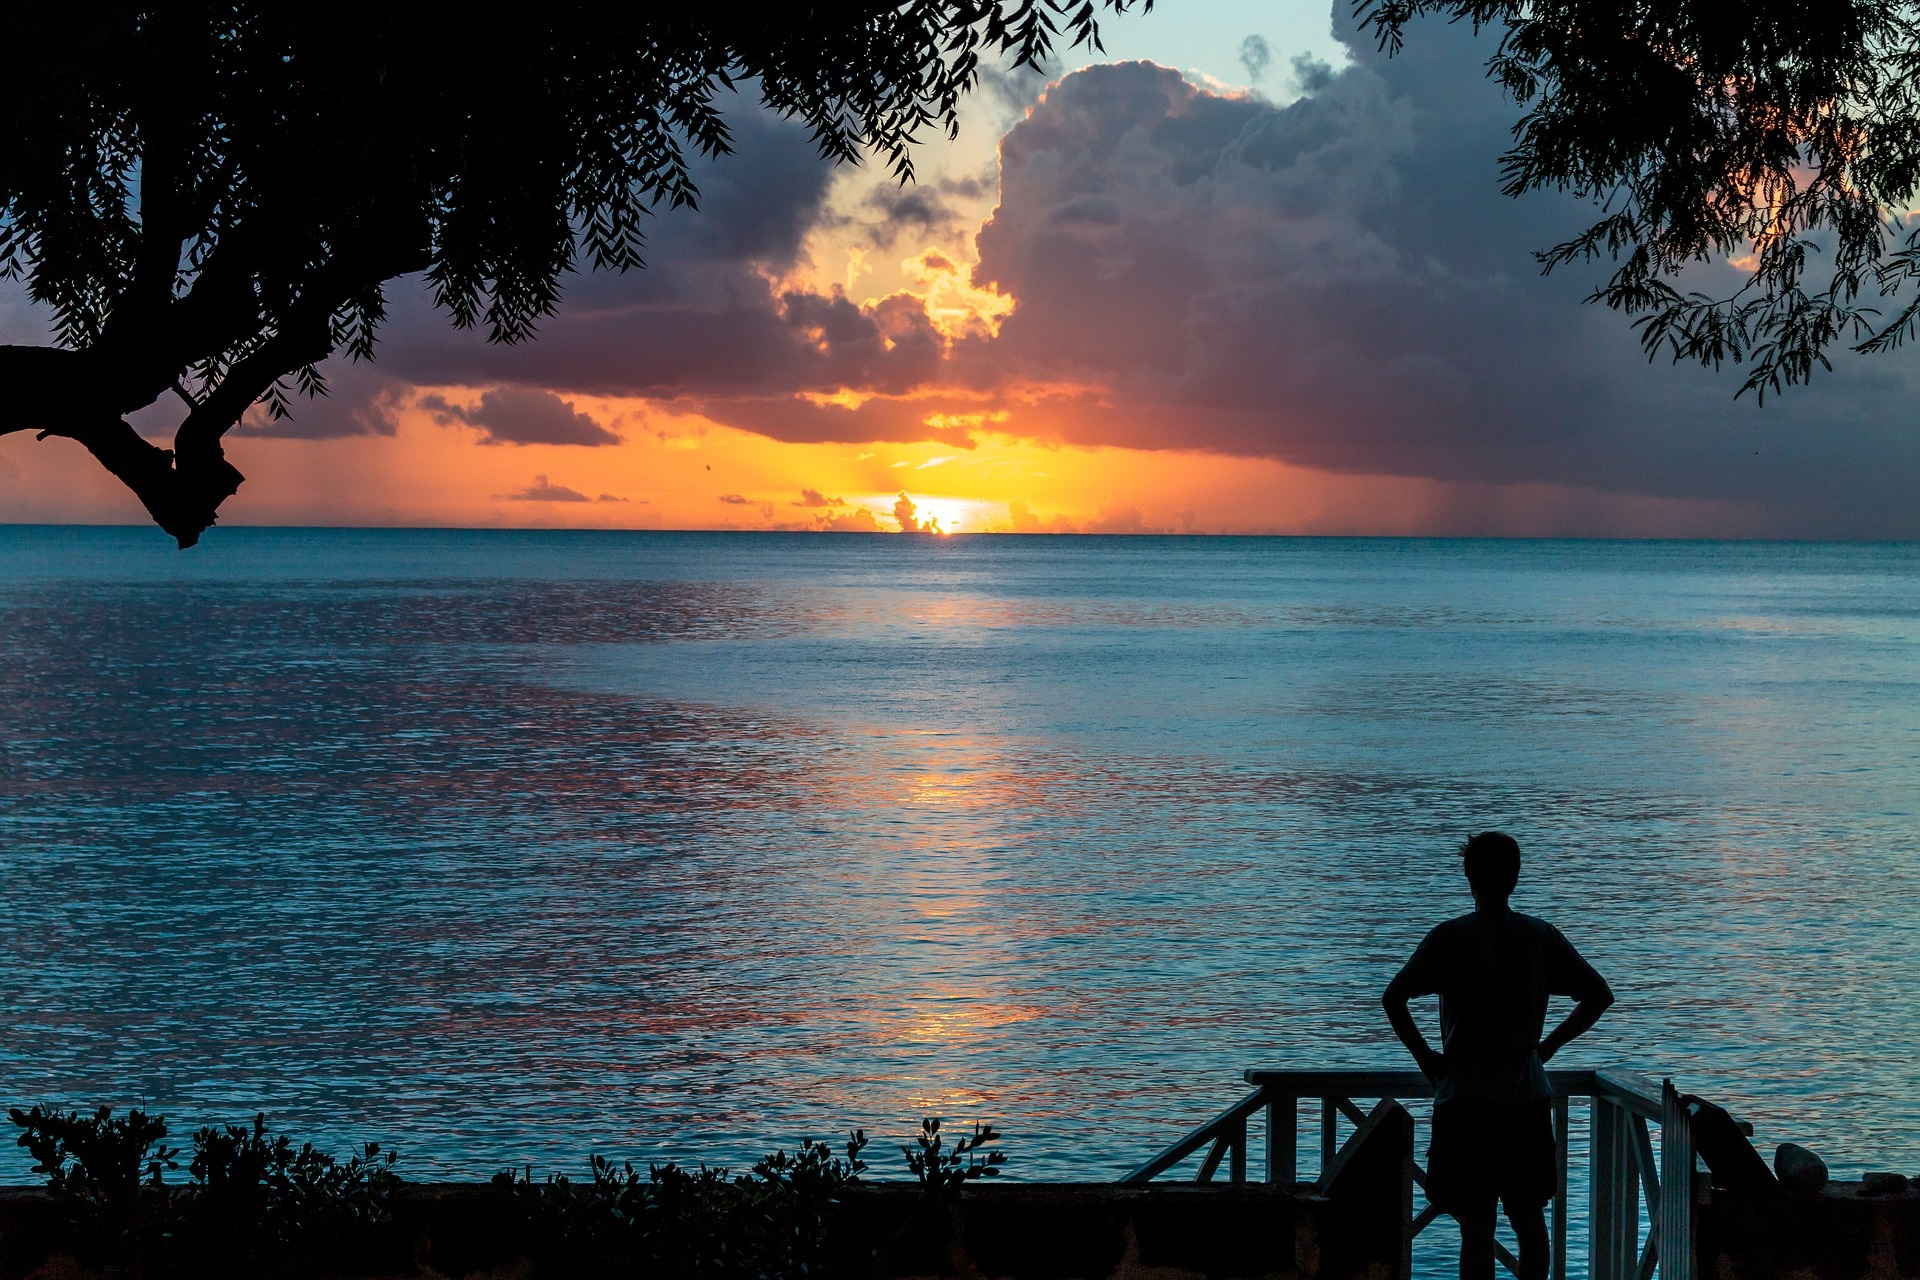 Barbados the southern Caribbean island's warm temperatures, sunny blue skies and waters, and white-sand beaches are qualities that Barbados shares with nations across the region.